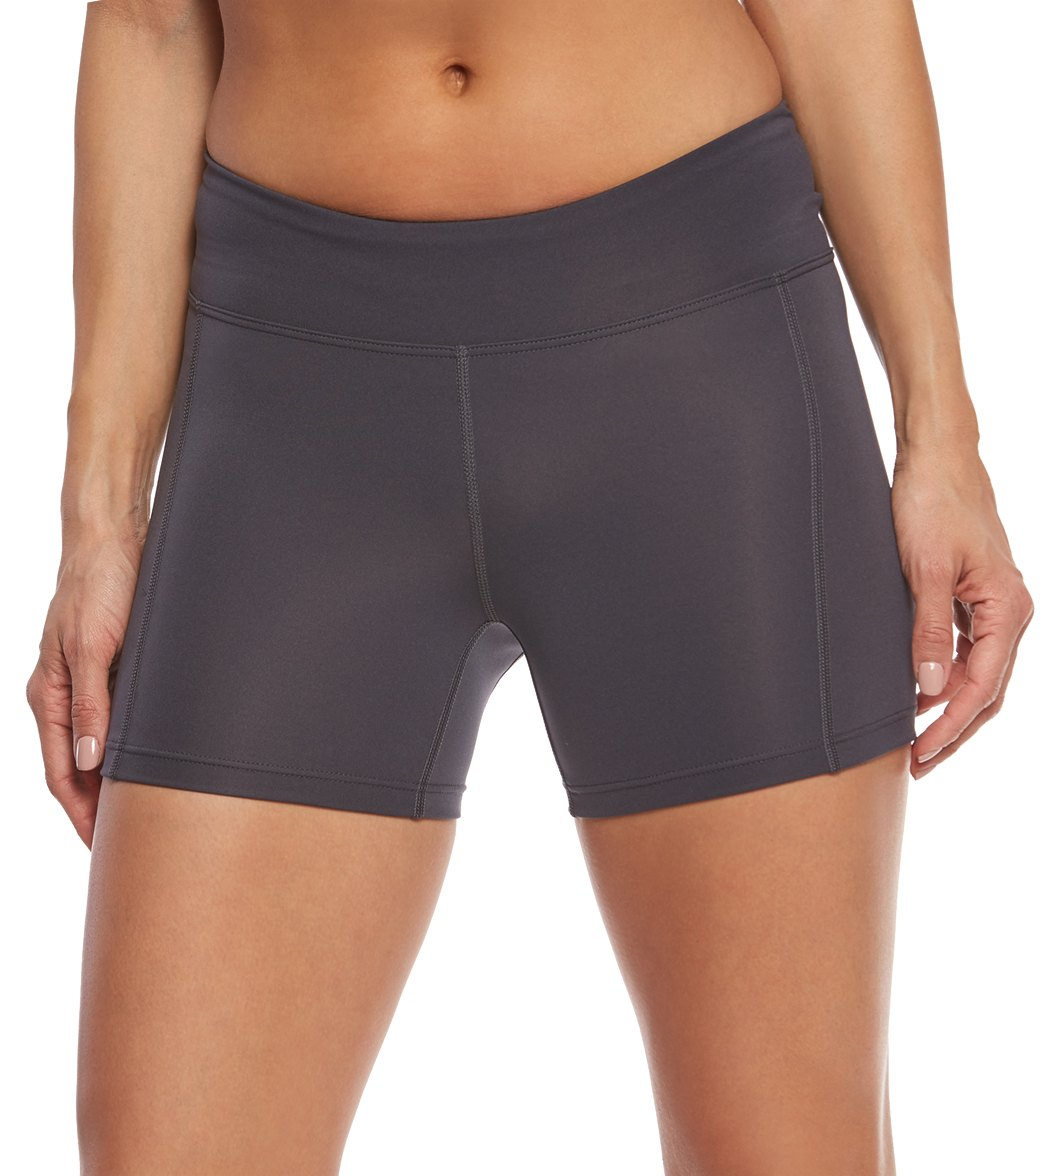 952fe894e301e TYR Women's Solid Kalani Swim Short at SwimOutlet.com